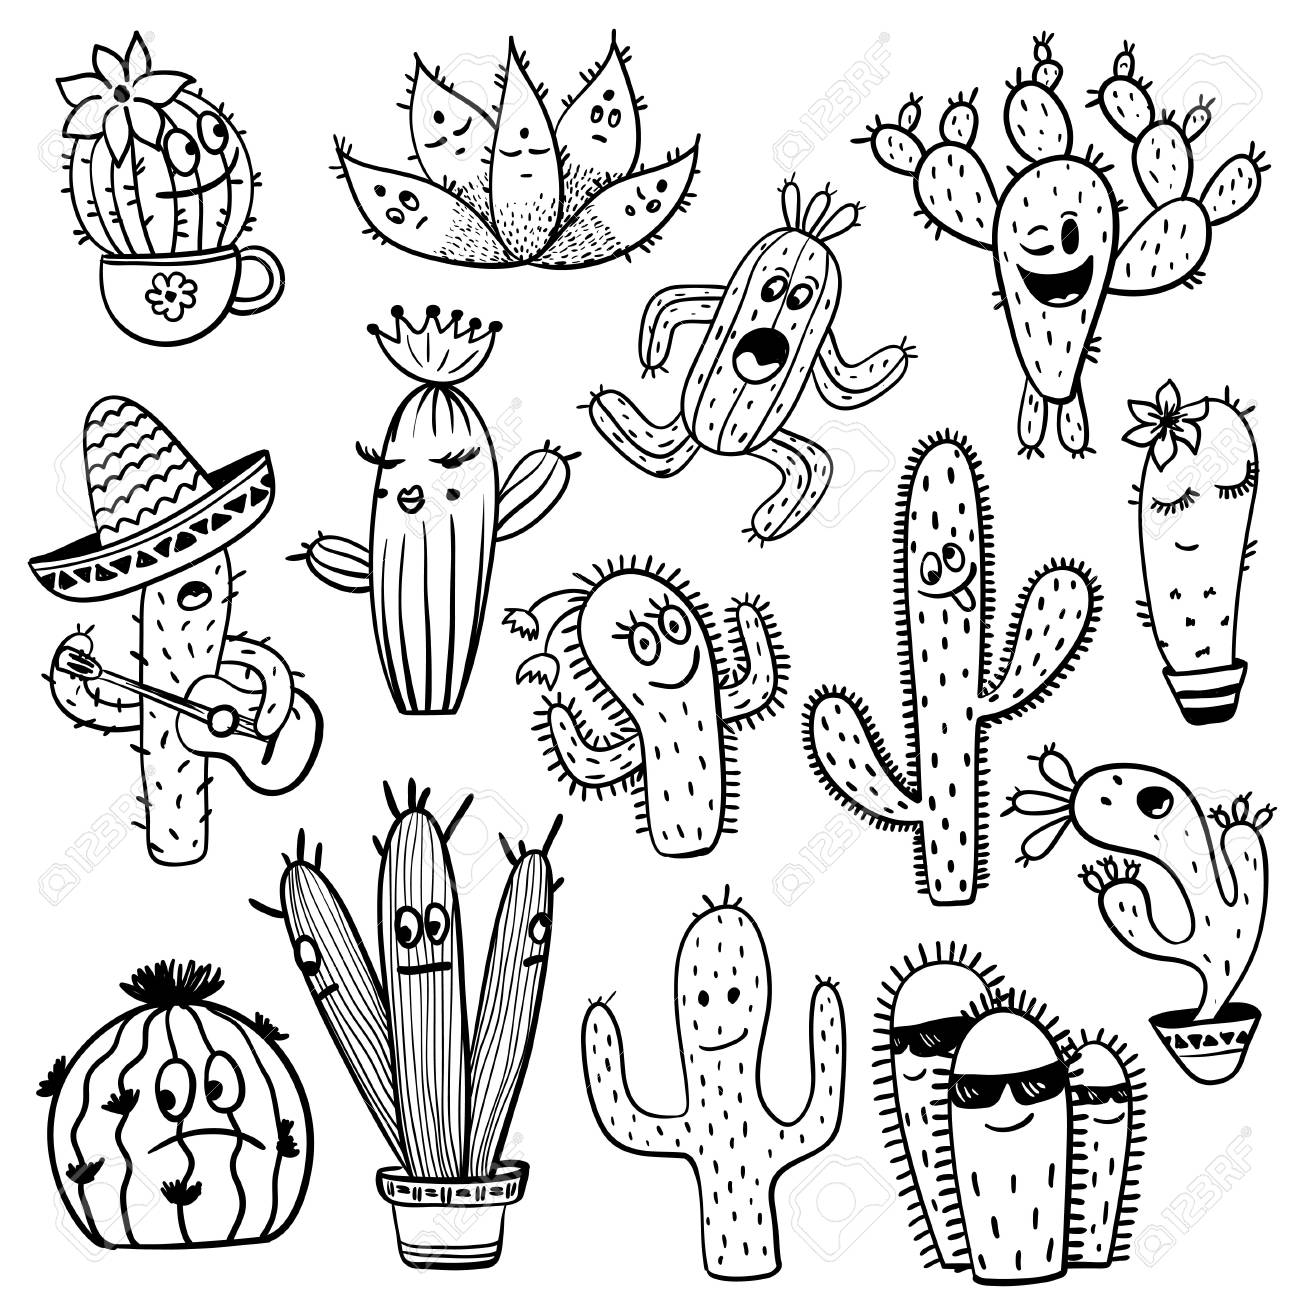 cactus drawing peanut cactus illustration drawing engraving ink line art cactus drawing